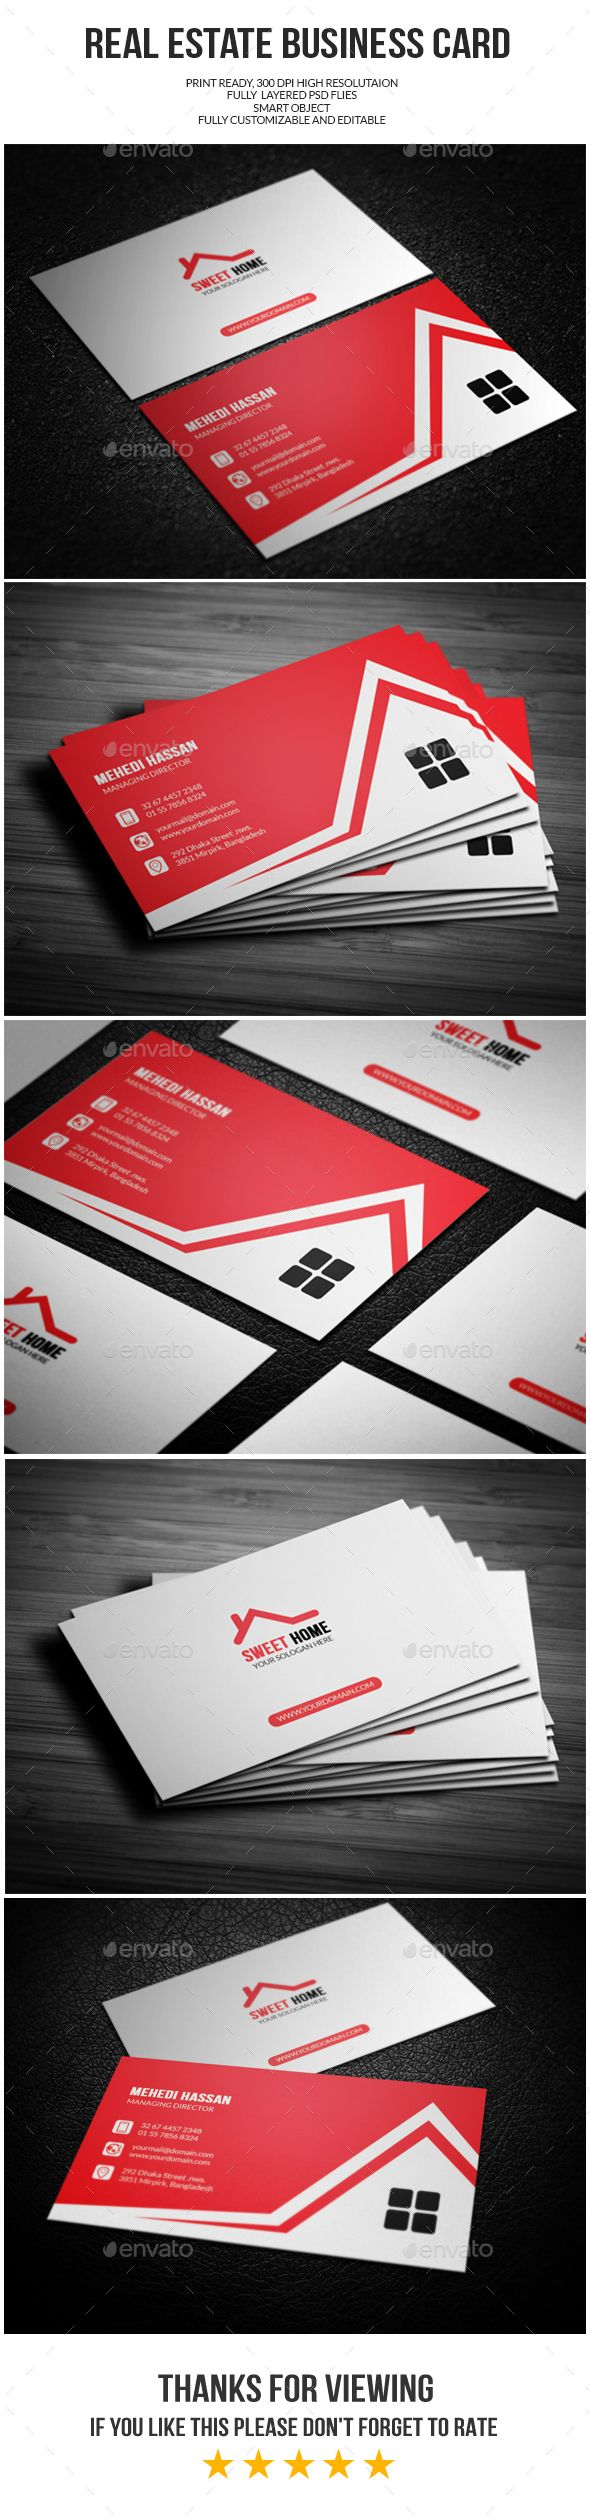 658 best business card images on pinterest business card design 658 best business card images on pinterest business card design corporate identity and business cards reheart Images